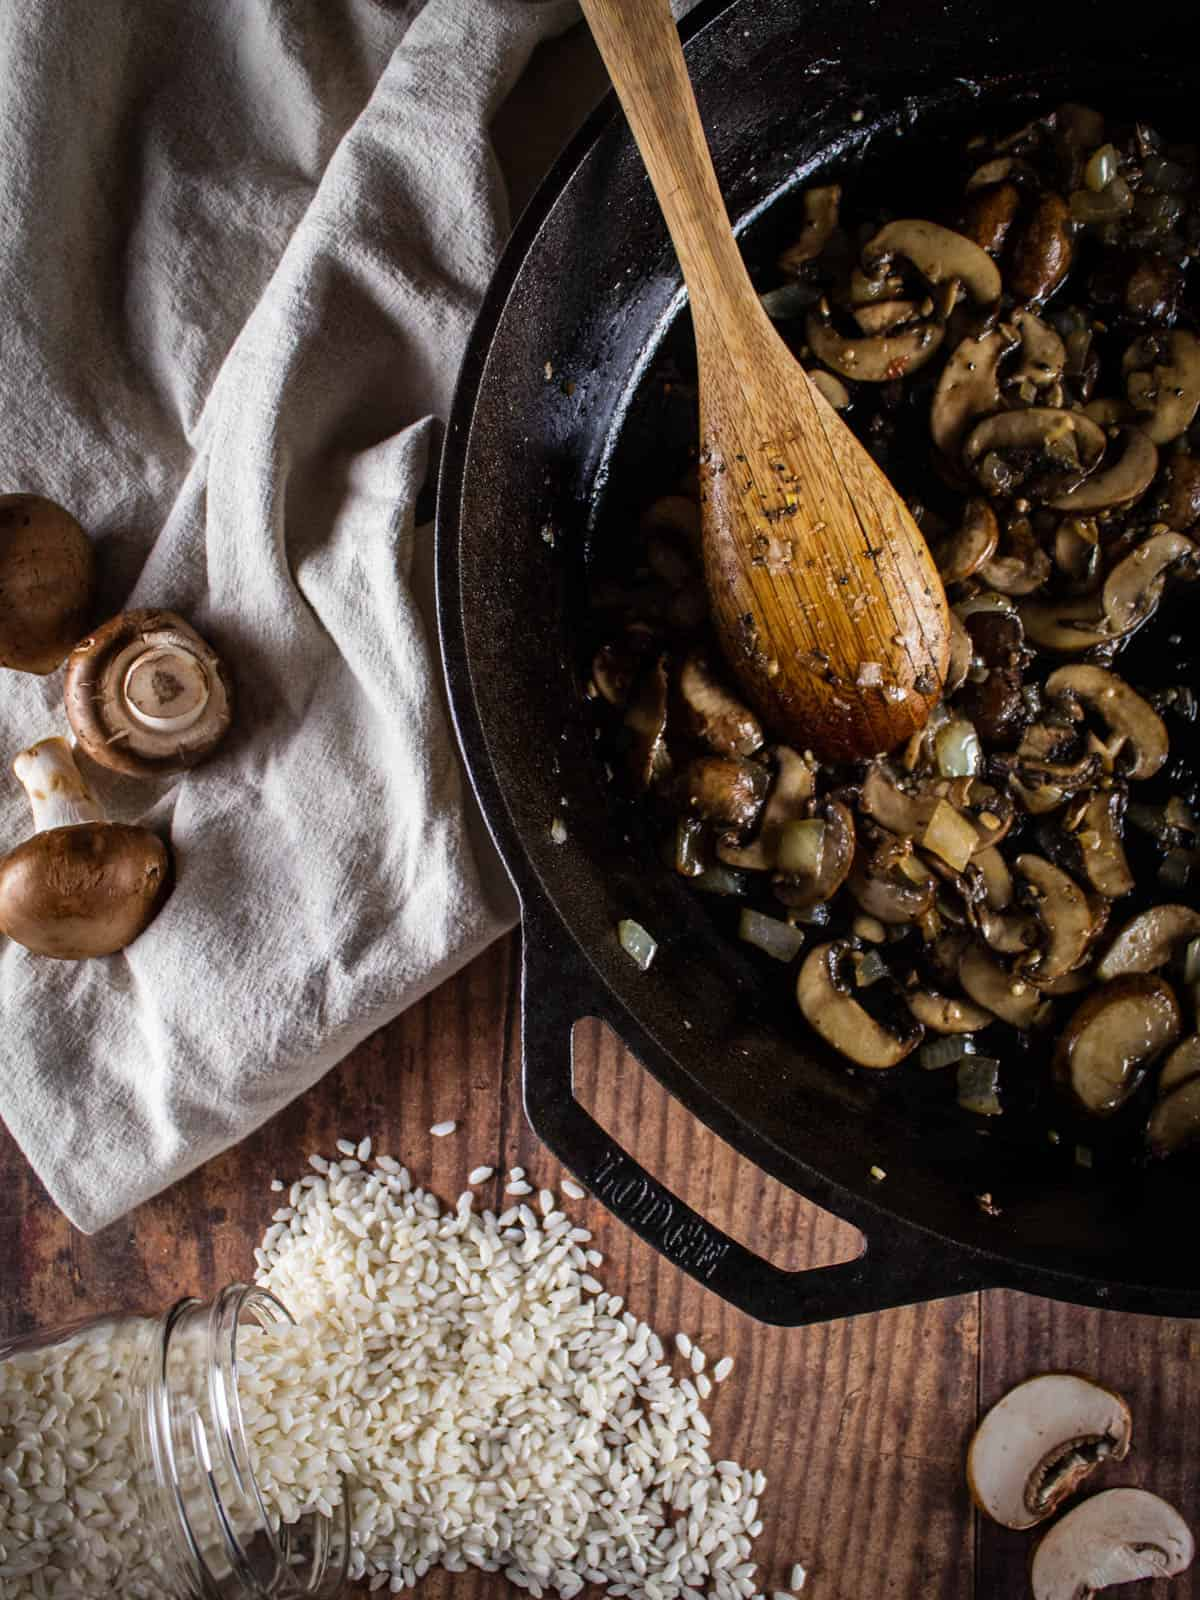 sauteed mushrooms, onions and garlic in a cast iron skillet